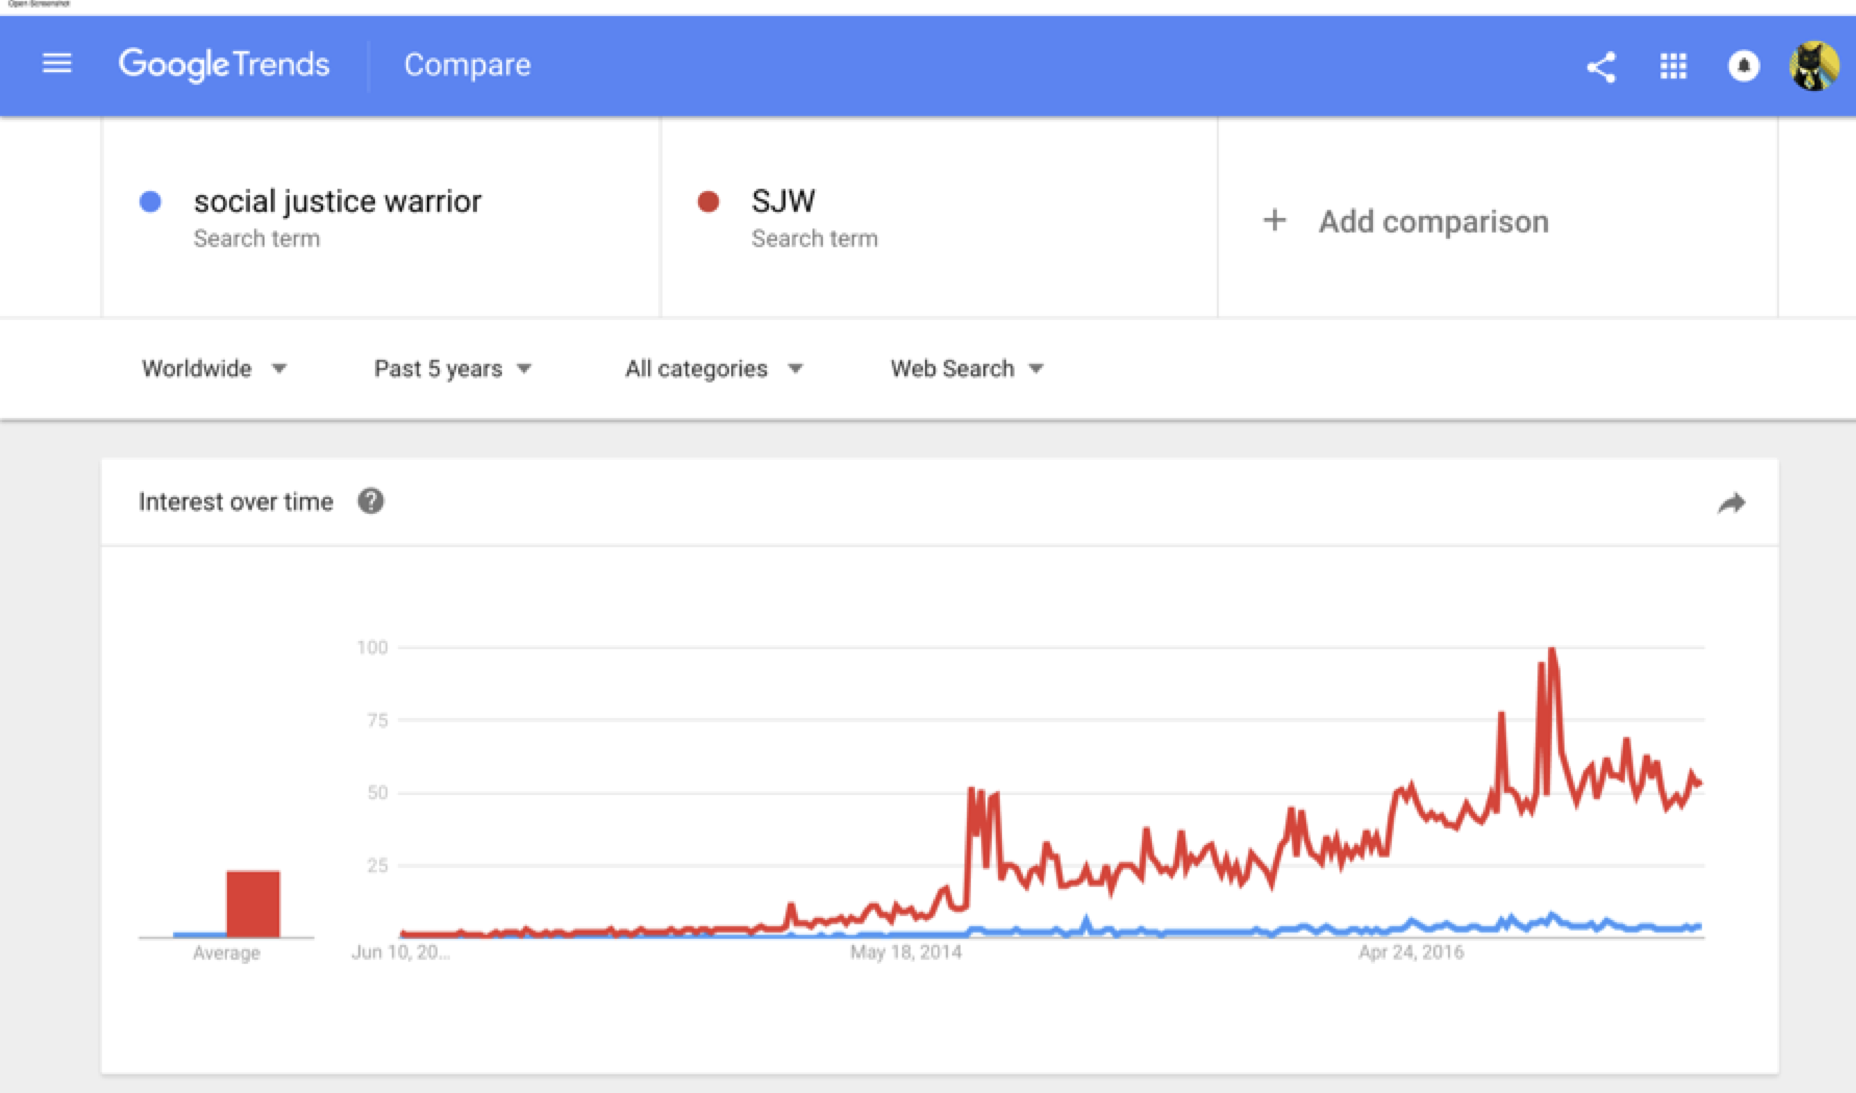 google trends for social justice warrior